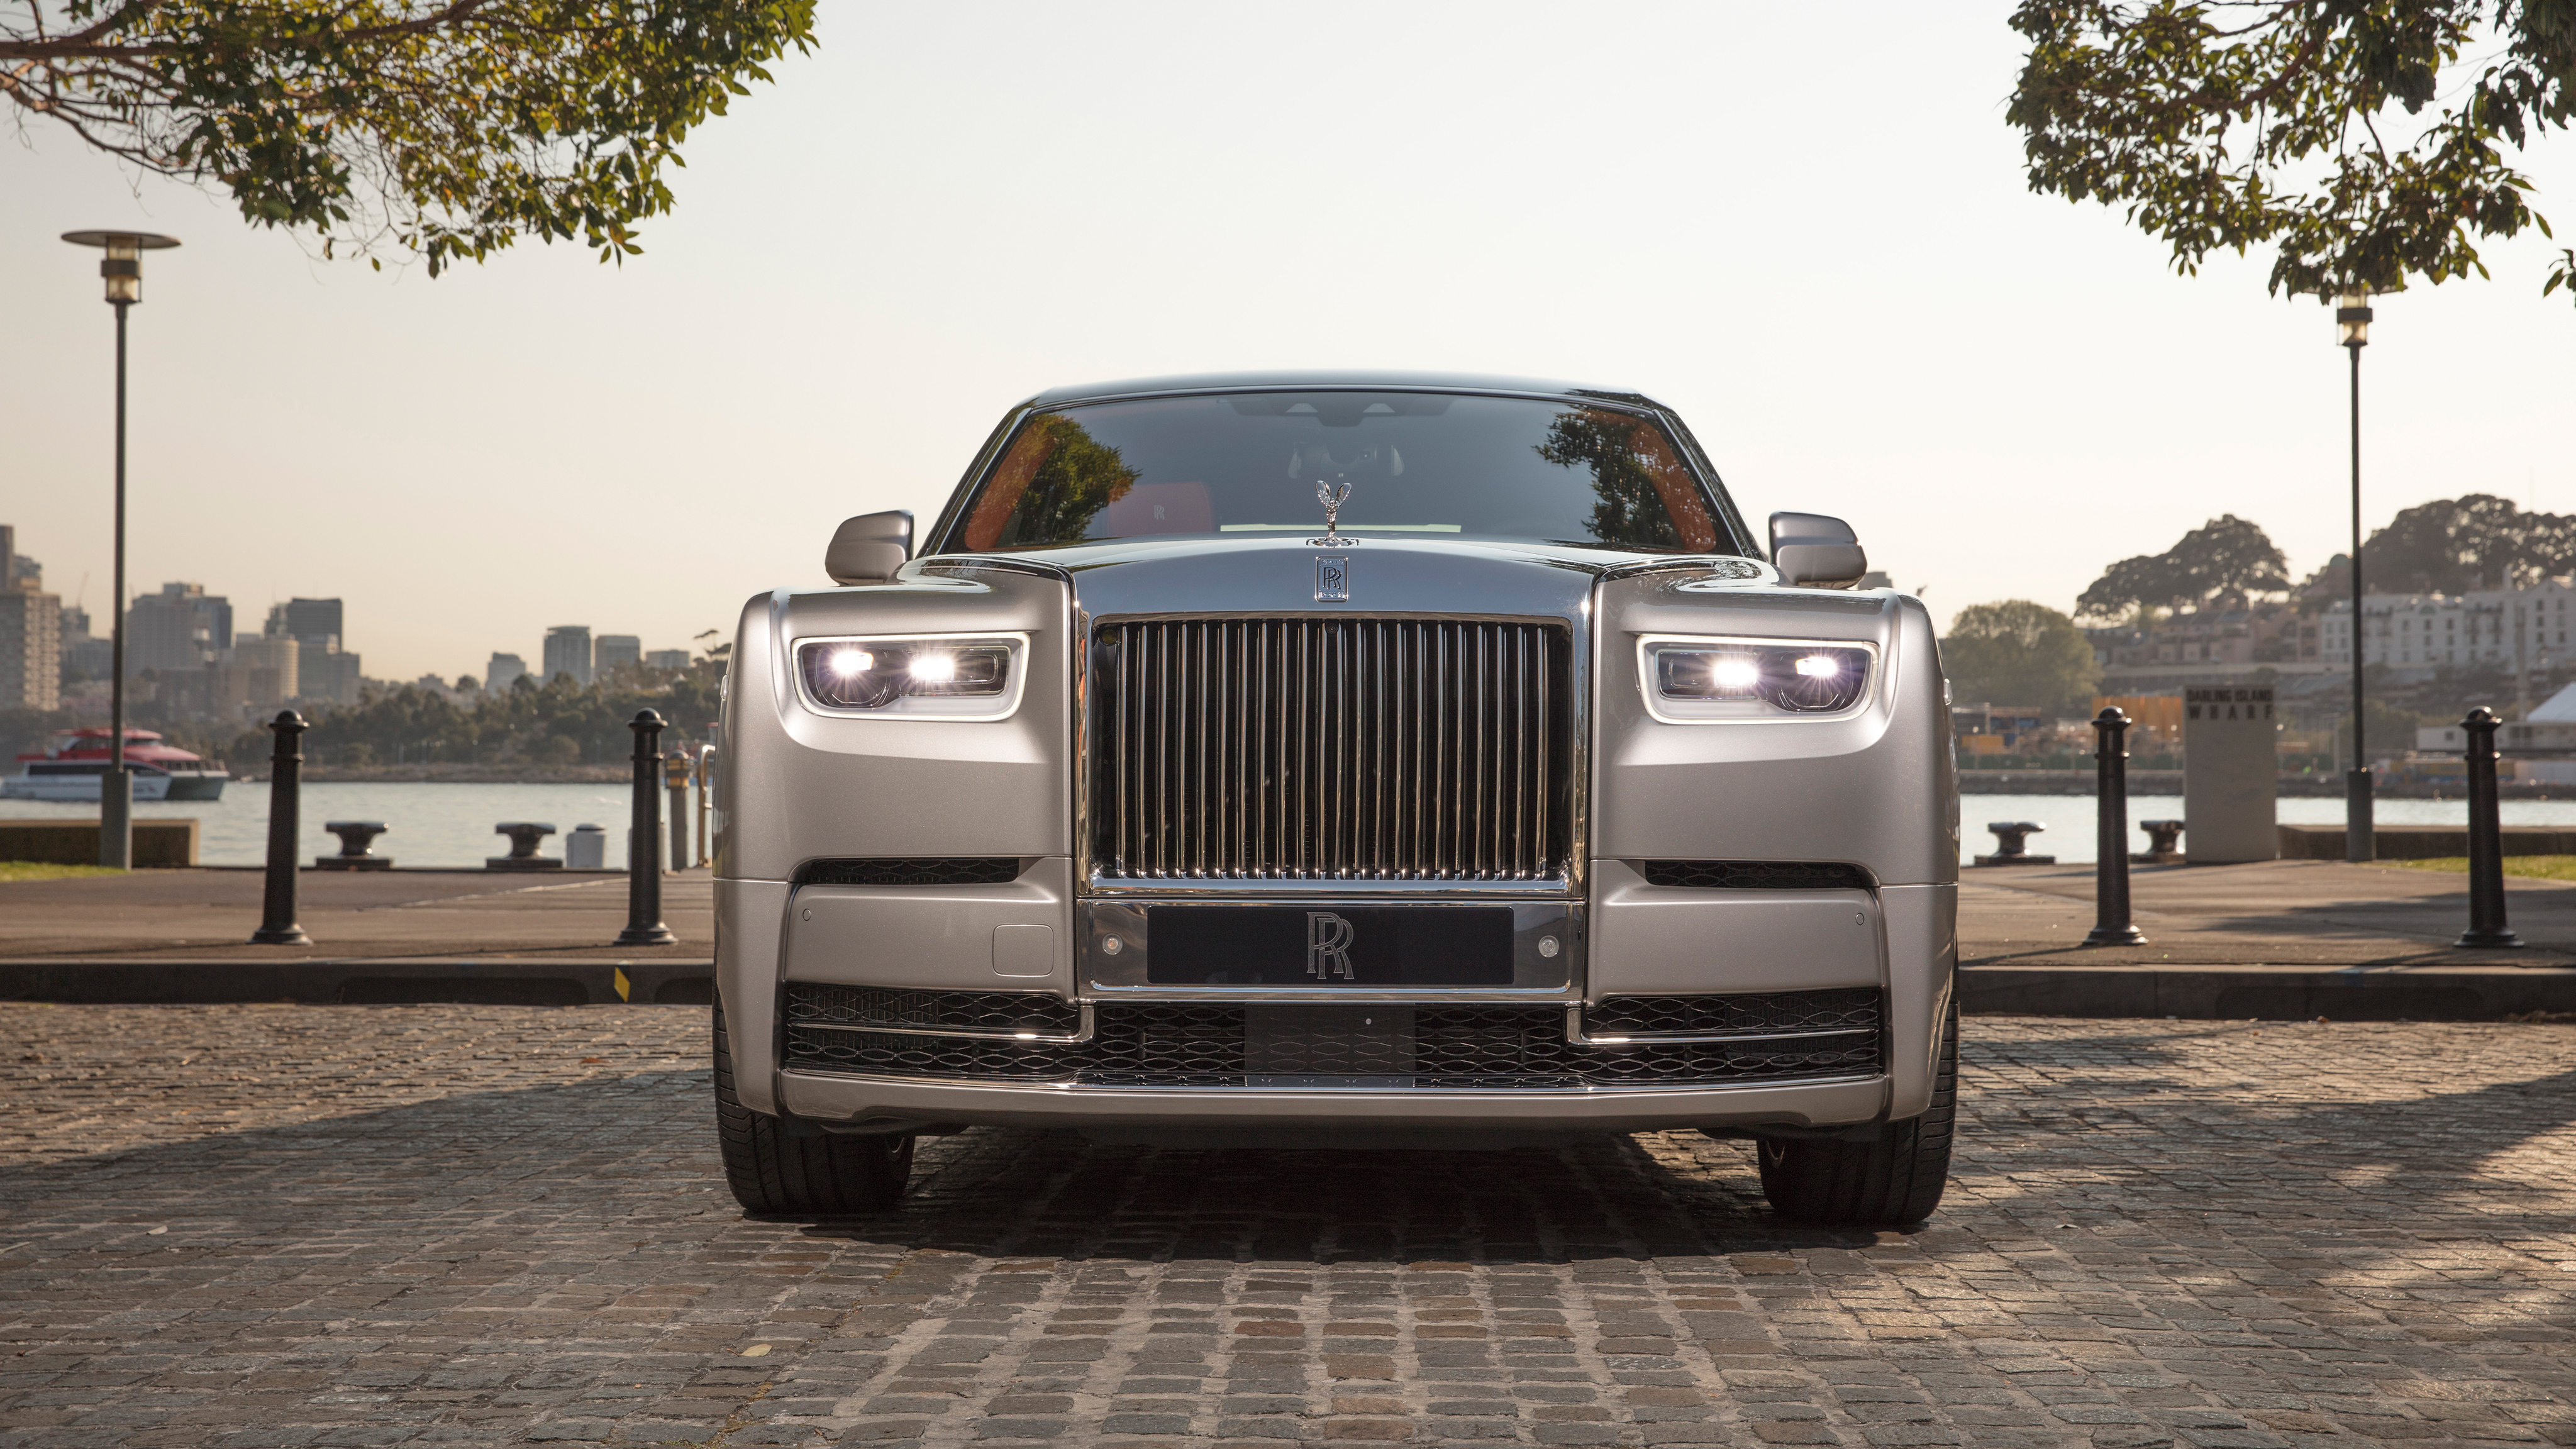 2018 Rolls Royce Phantom 4K Wallpaper | HD Car Wallpapers ...